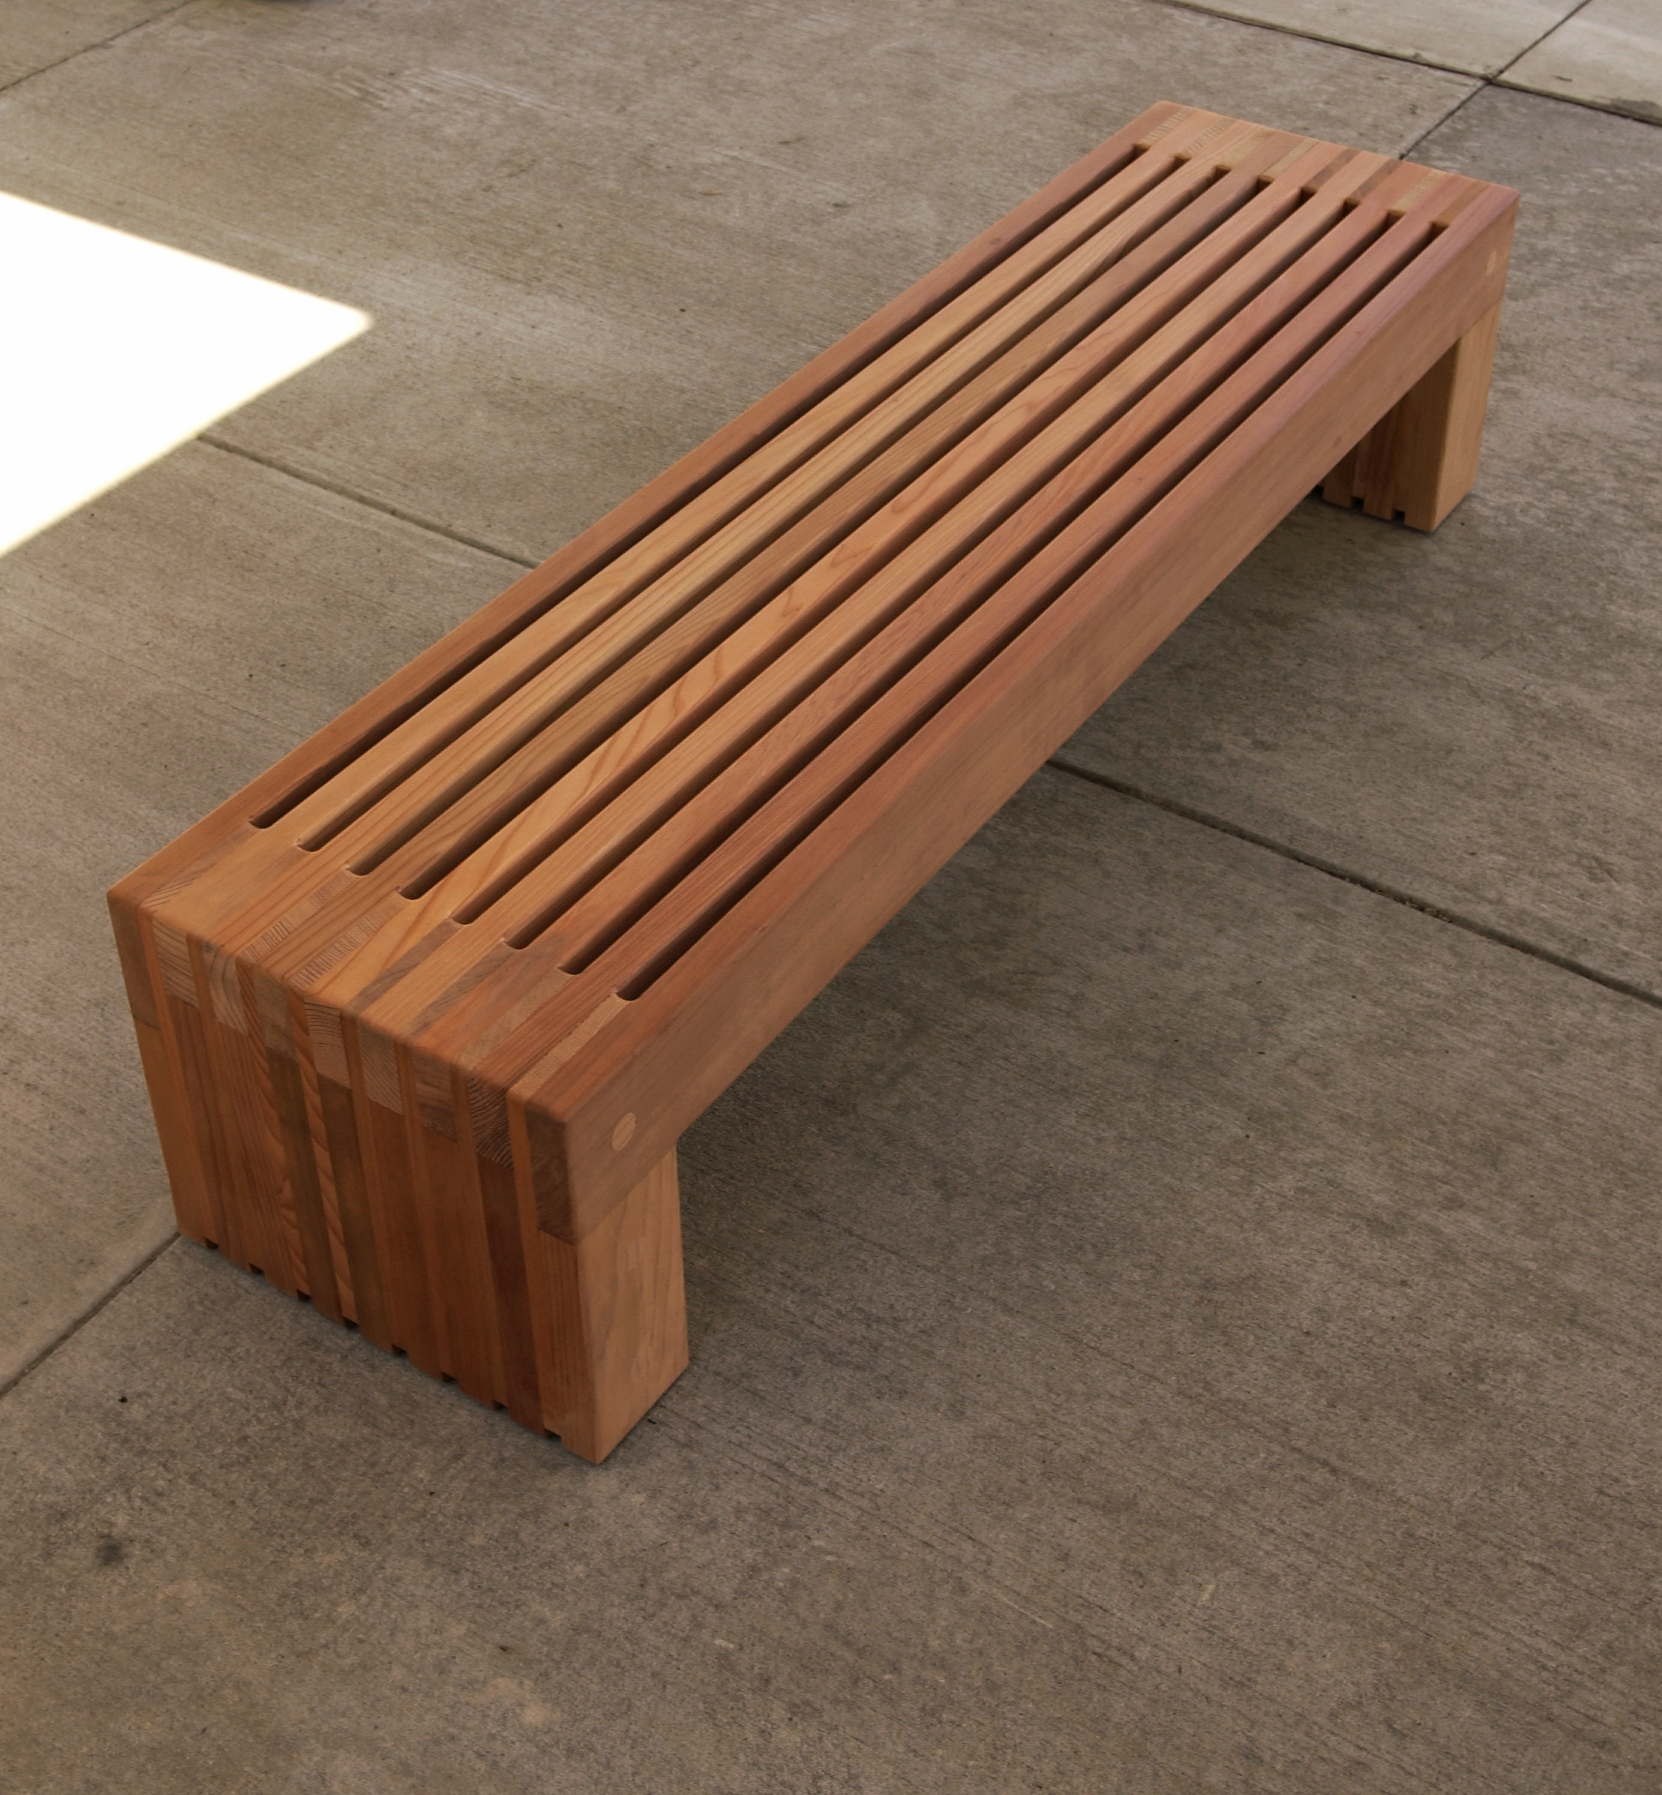 Backless Benches Indoor Part - 39: Landscape Forms